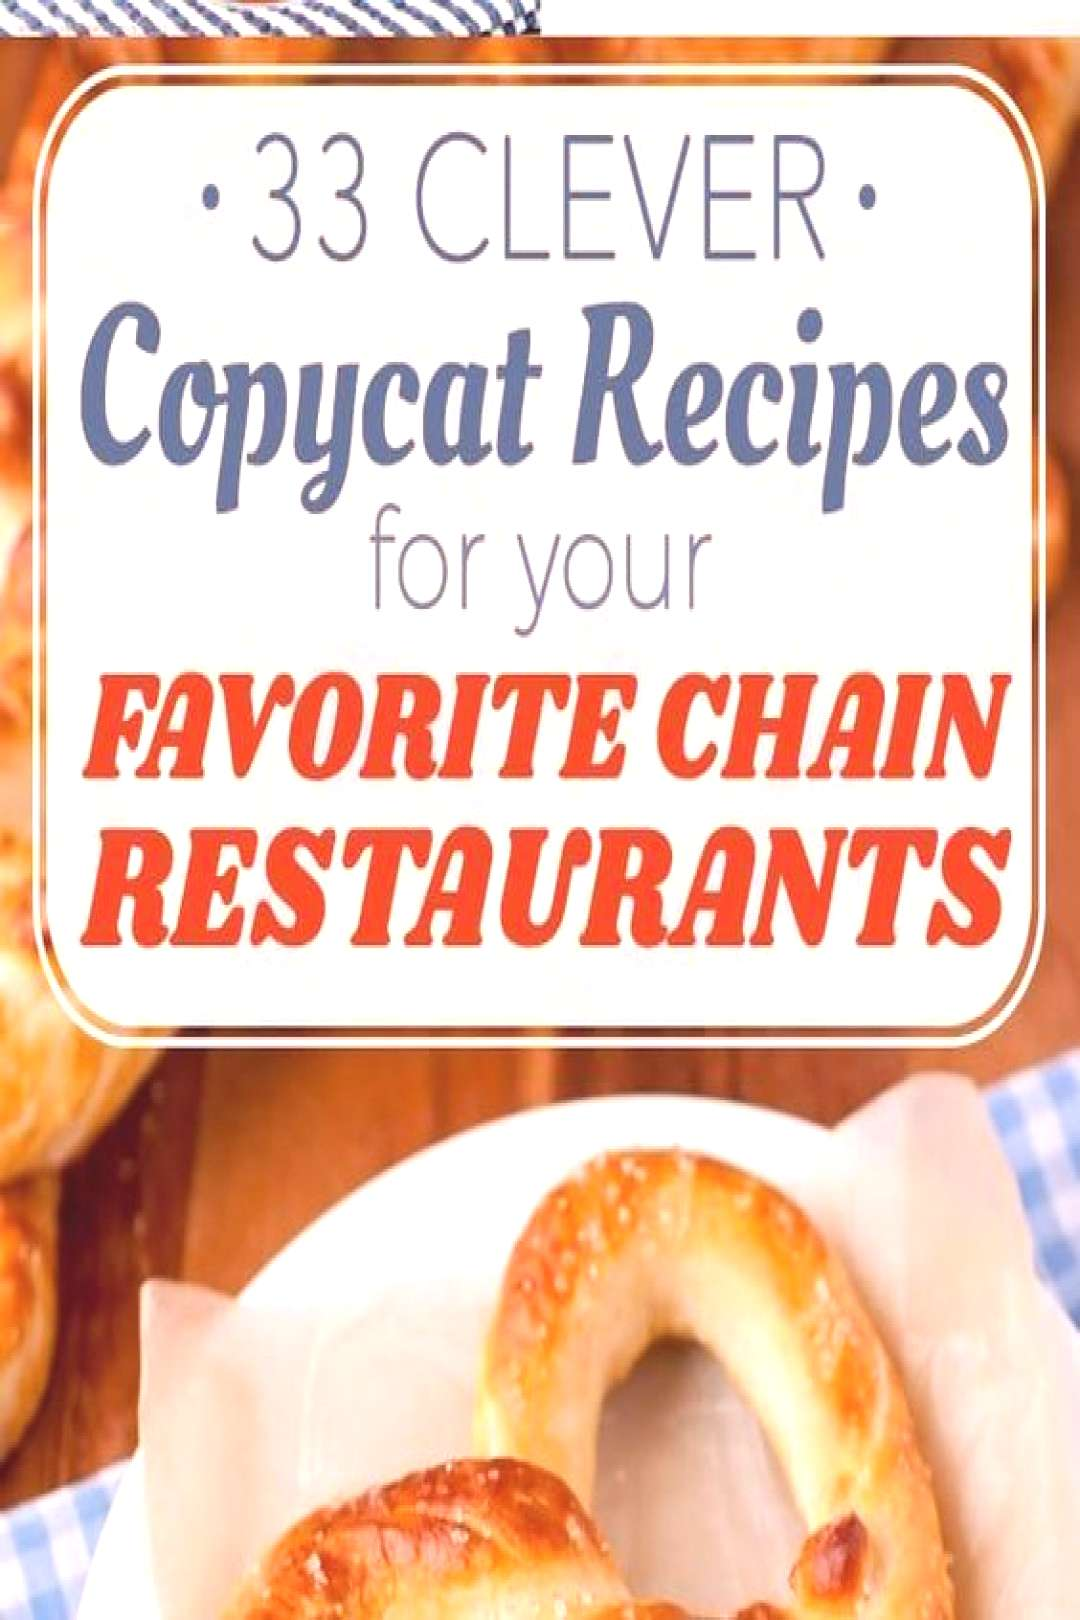 33 Clever Copycat Recipes For Your Favorite Chain Restaurants - 33 Clever Copycat Recipes For Your